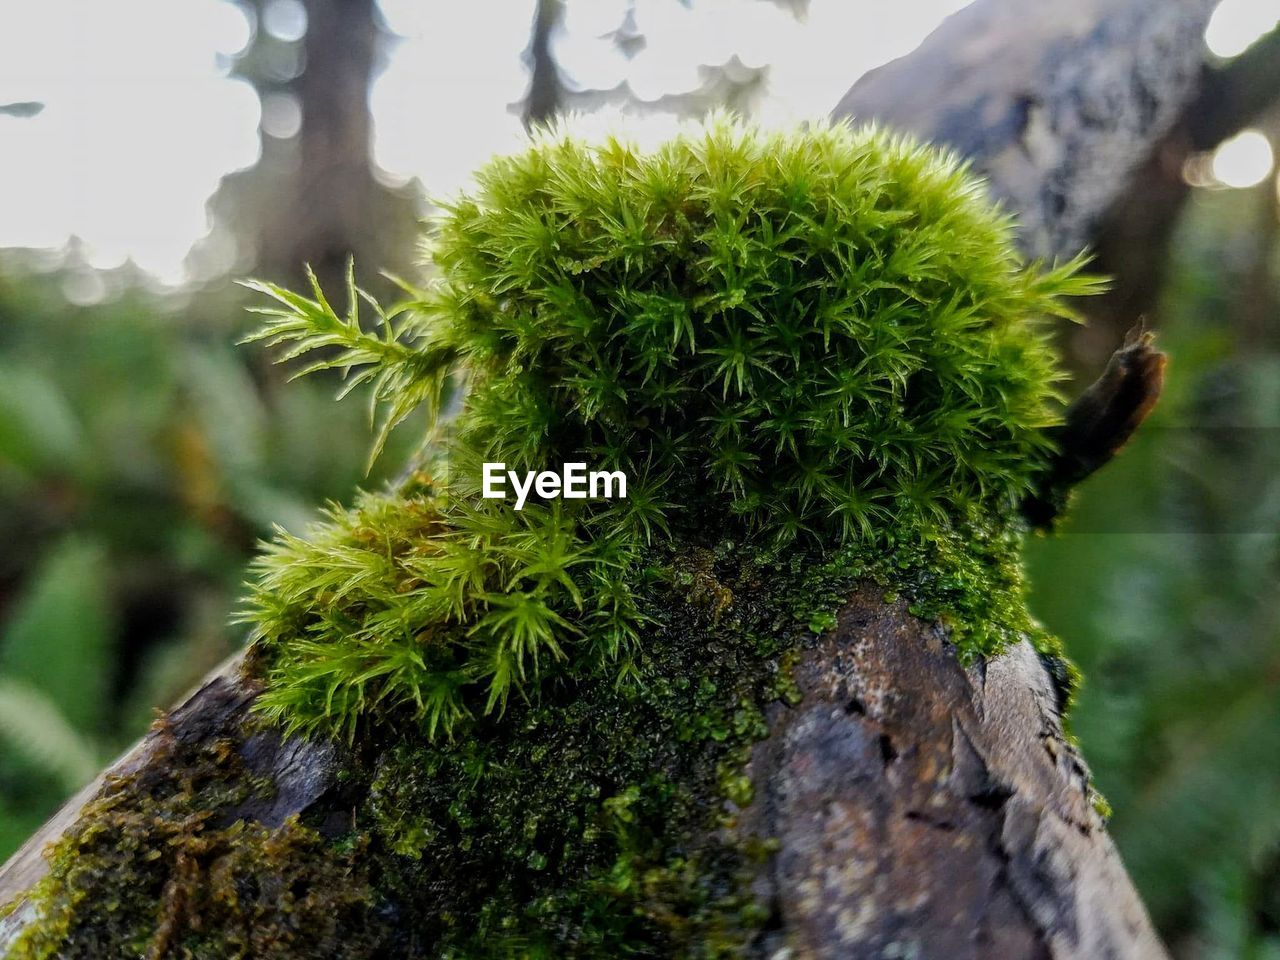 growth, green color, nature, close-up, focus on foreground, no people, day, plant, outdoors, spiked, beauty in nature, cactus, tree, freshness